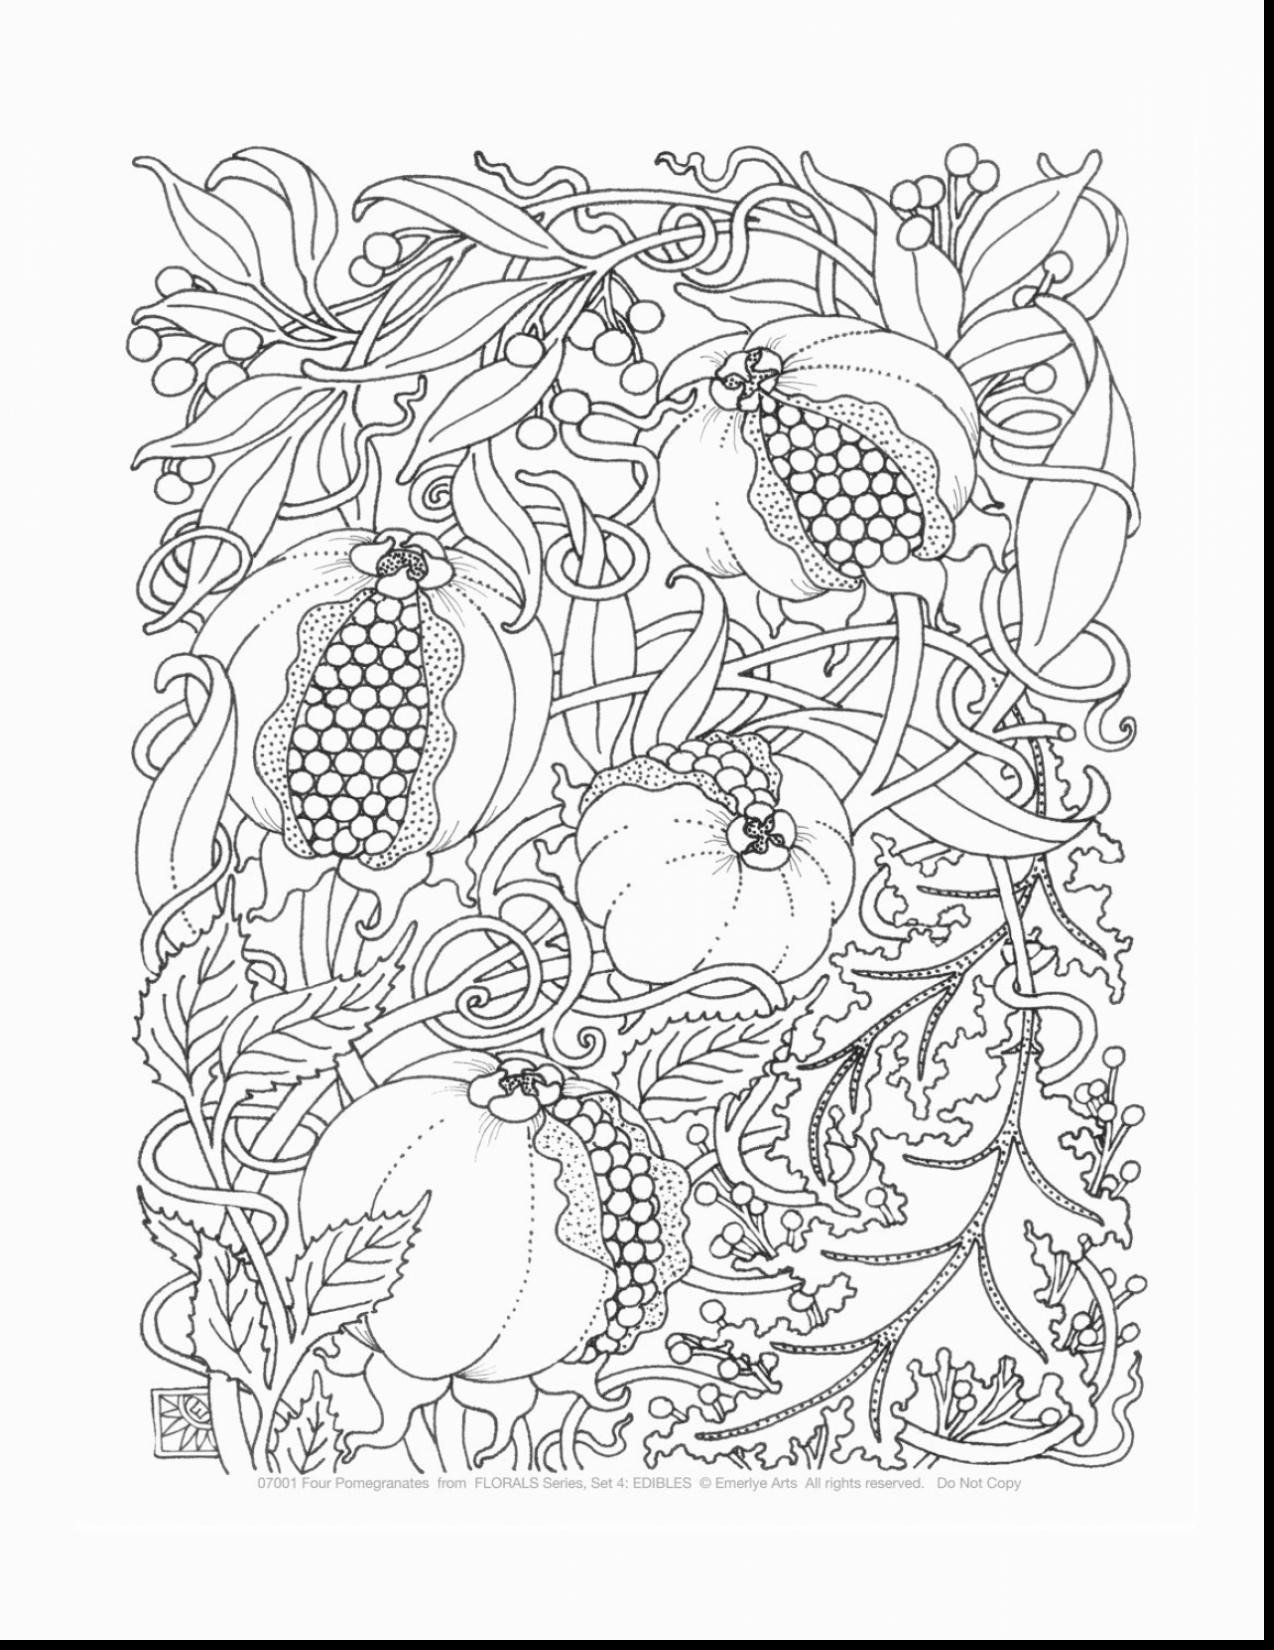 Mandala Online Coloring Pages Coloring Pages Best Coloring Animal For Adults Ly At Animal Coloring Pages Mandala Coloring Pages Coloring Books